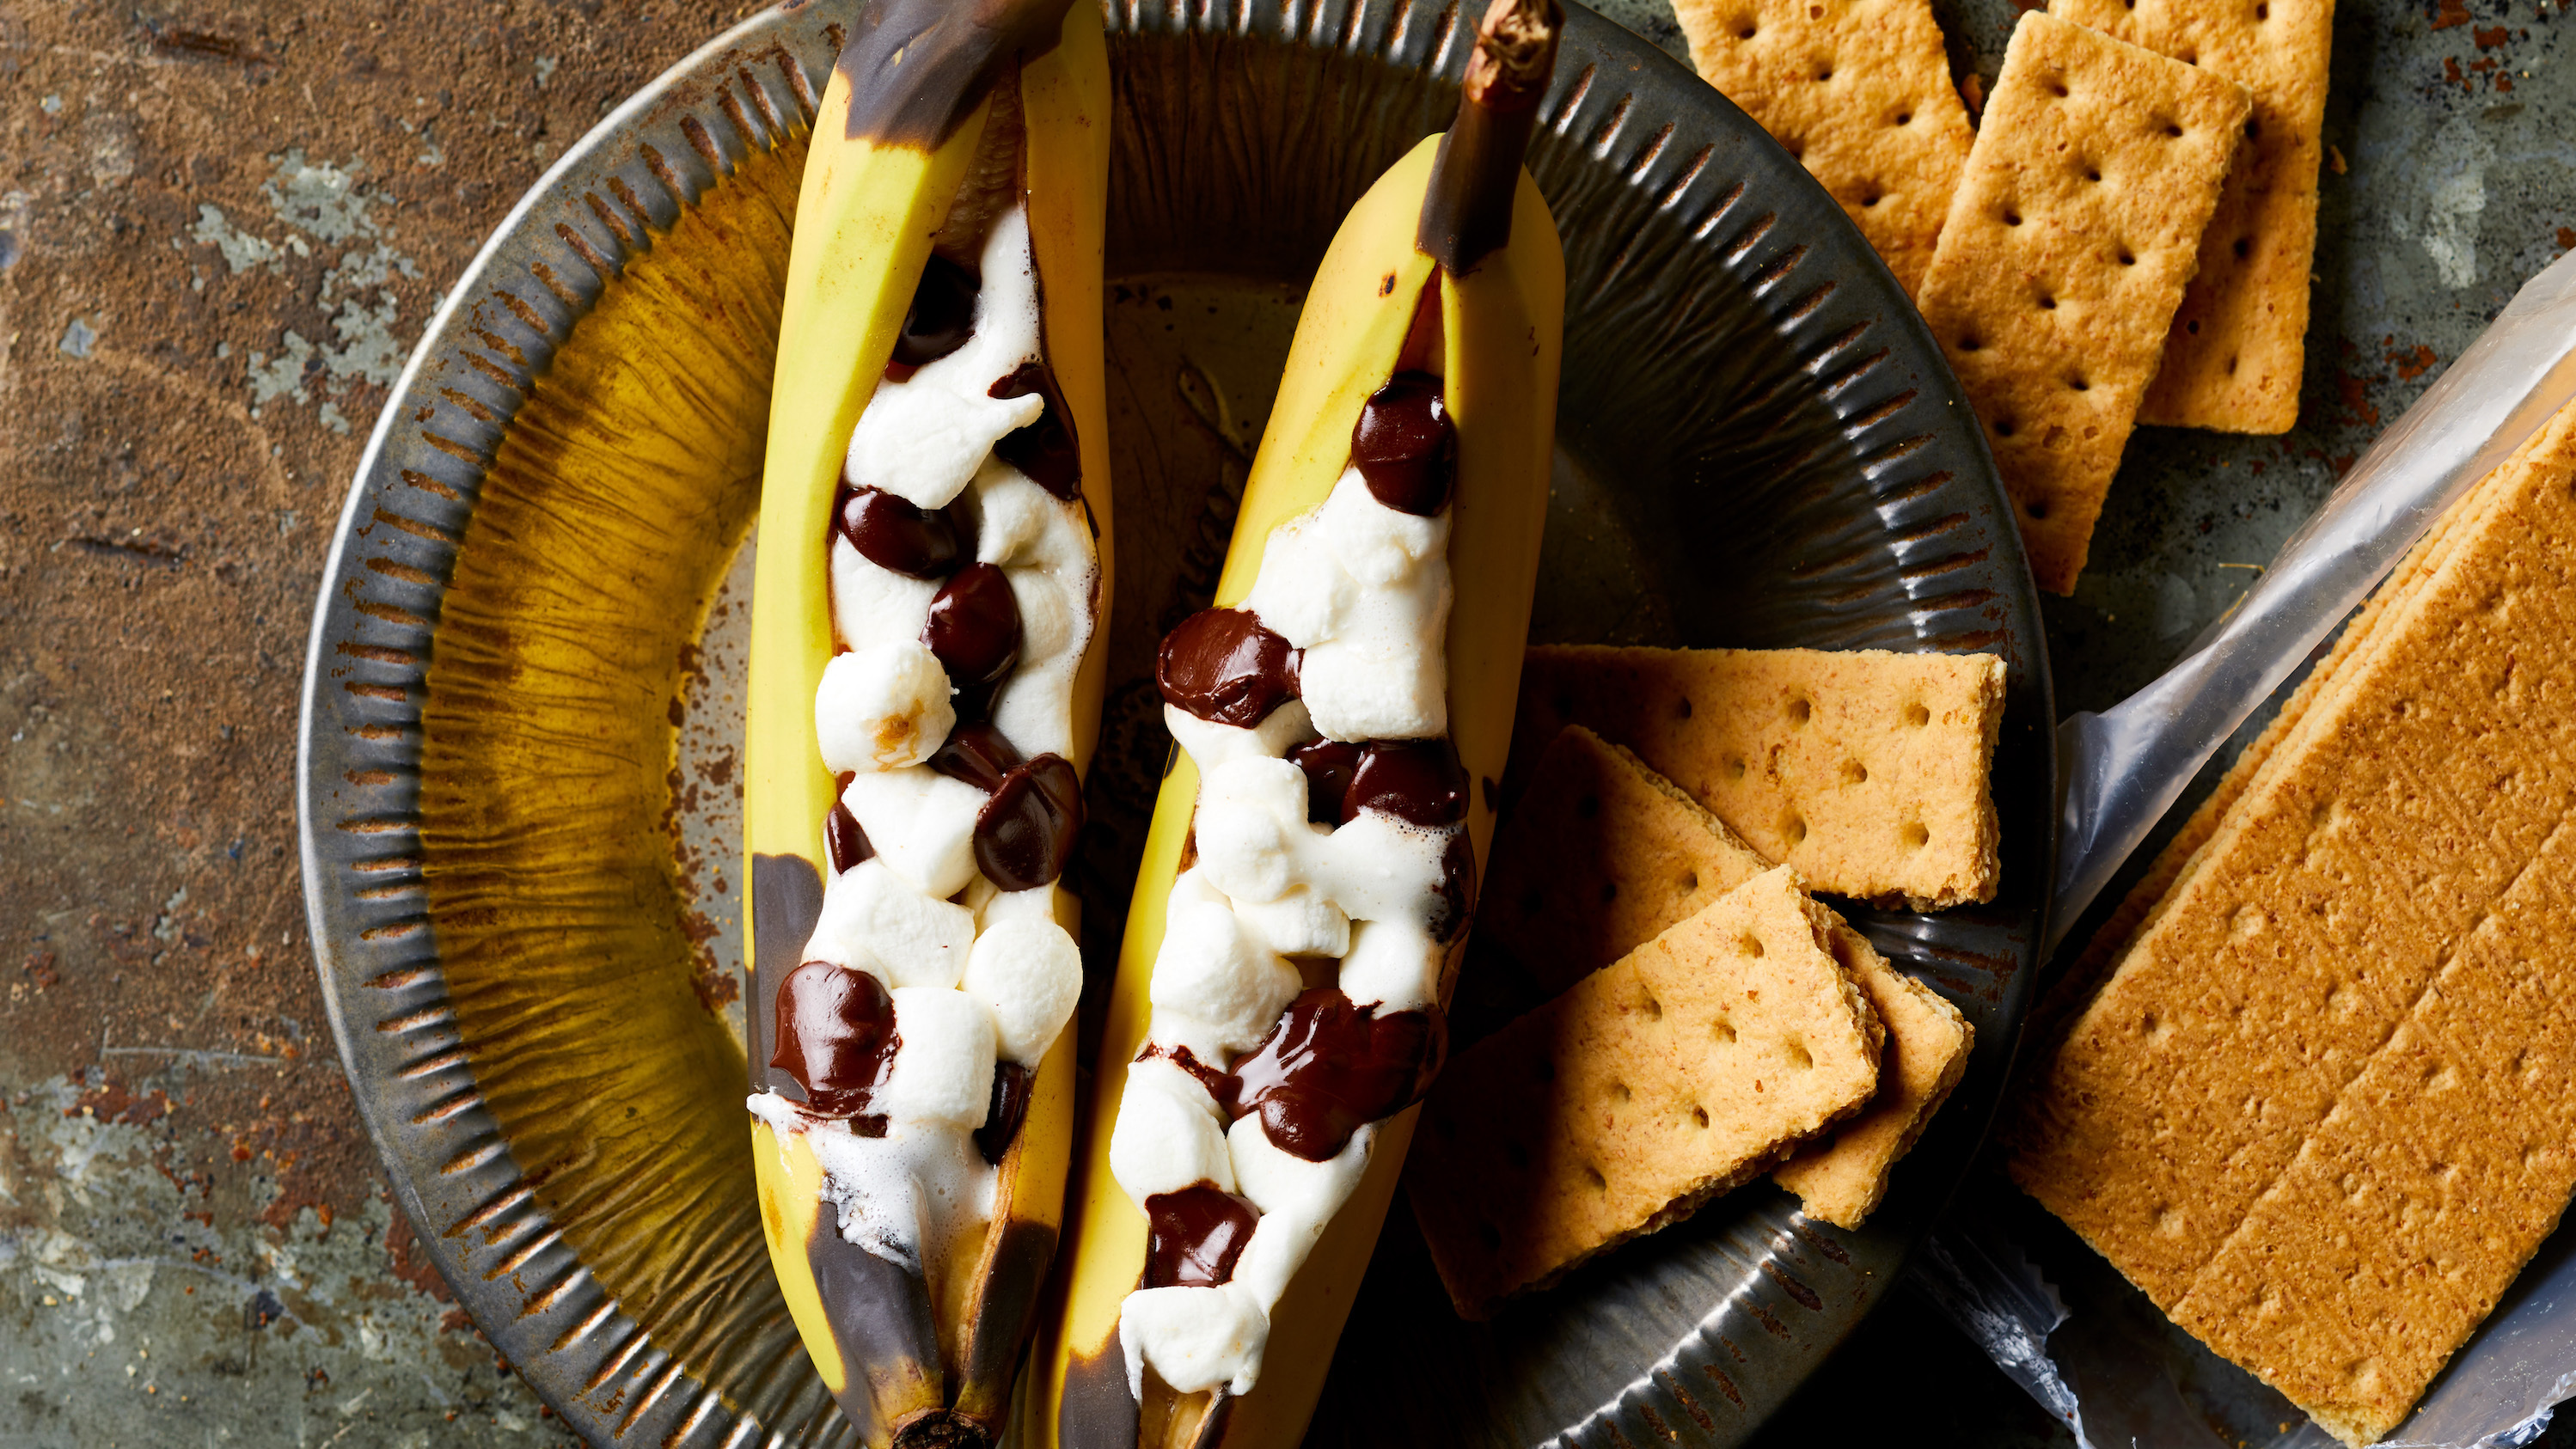 Campfire Banana S'mores Trusted Brands